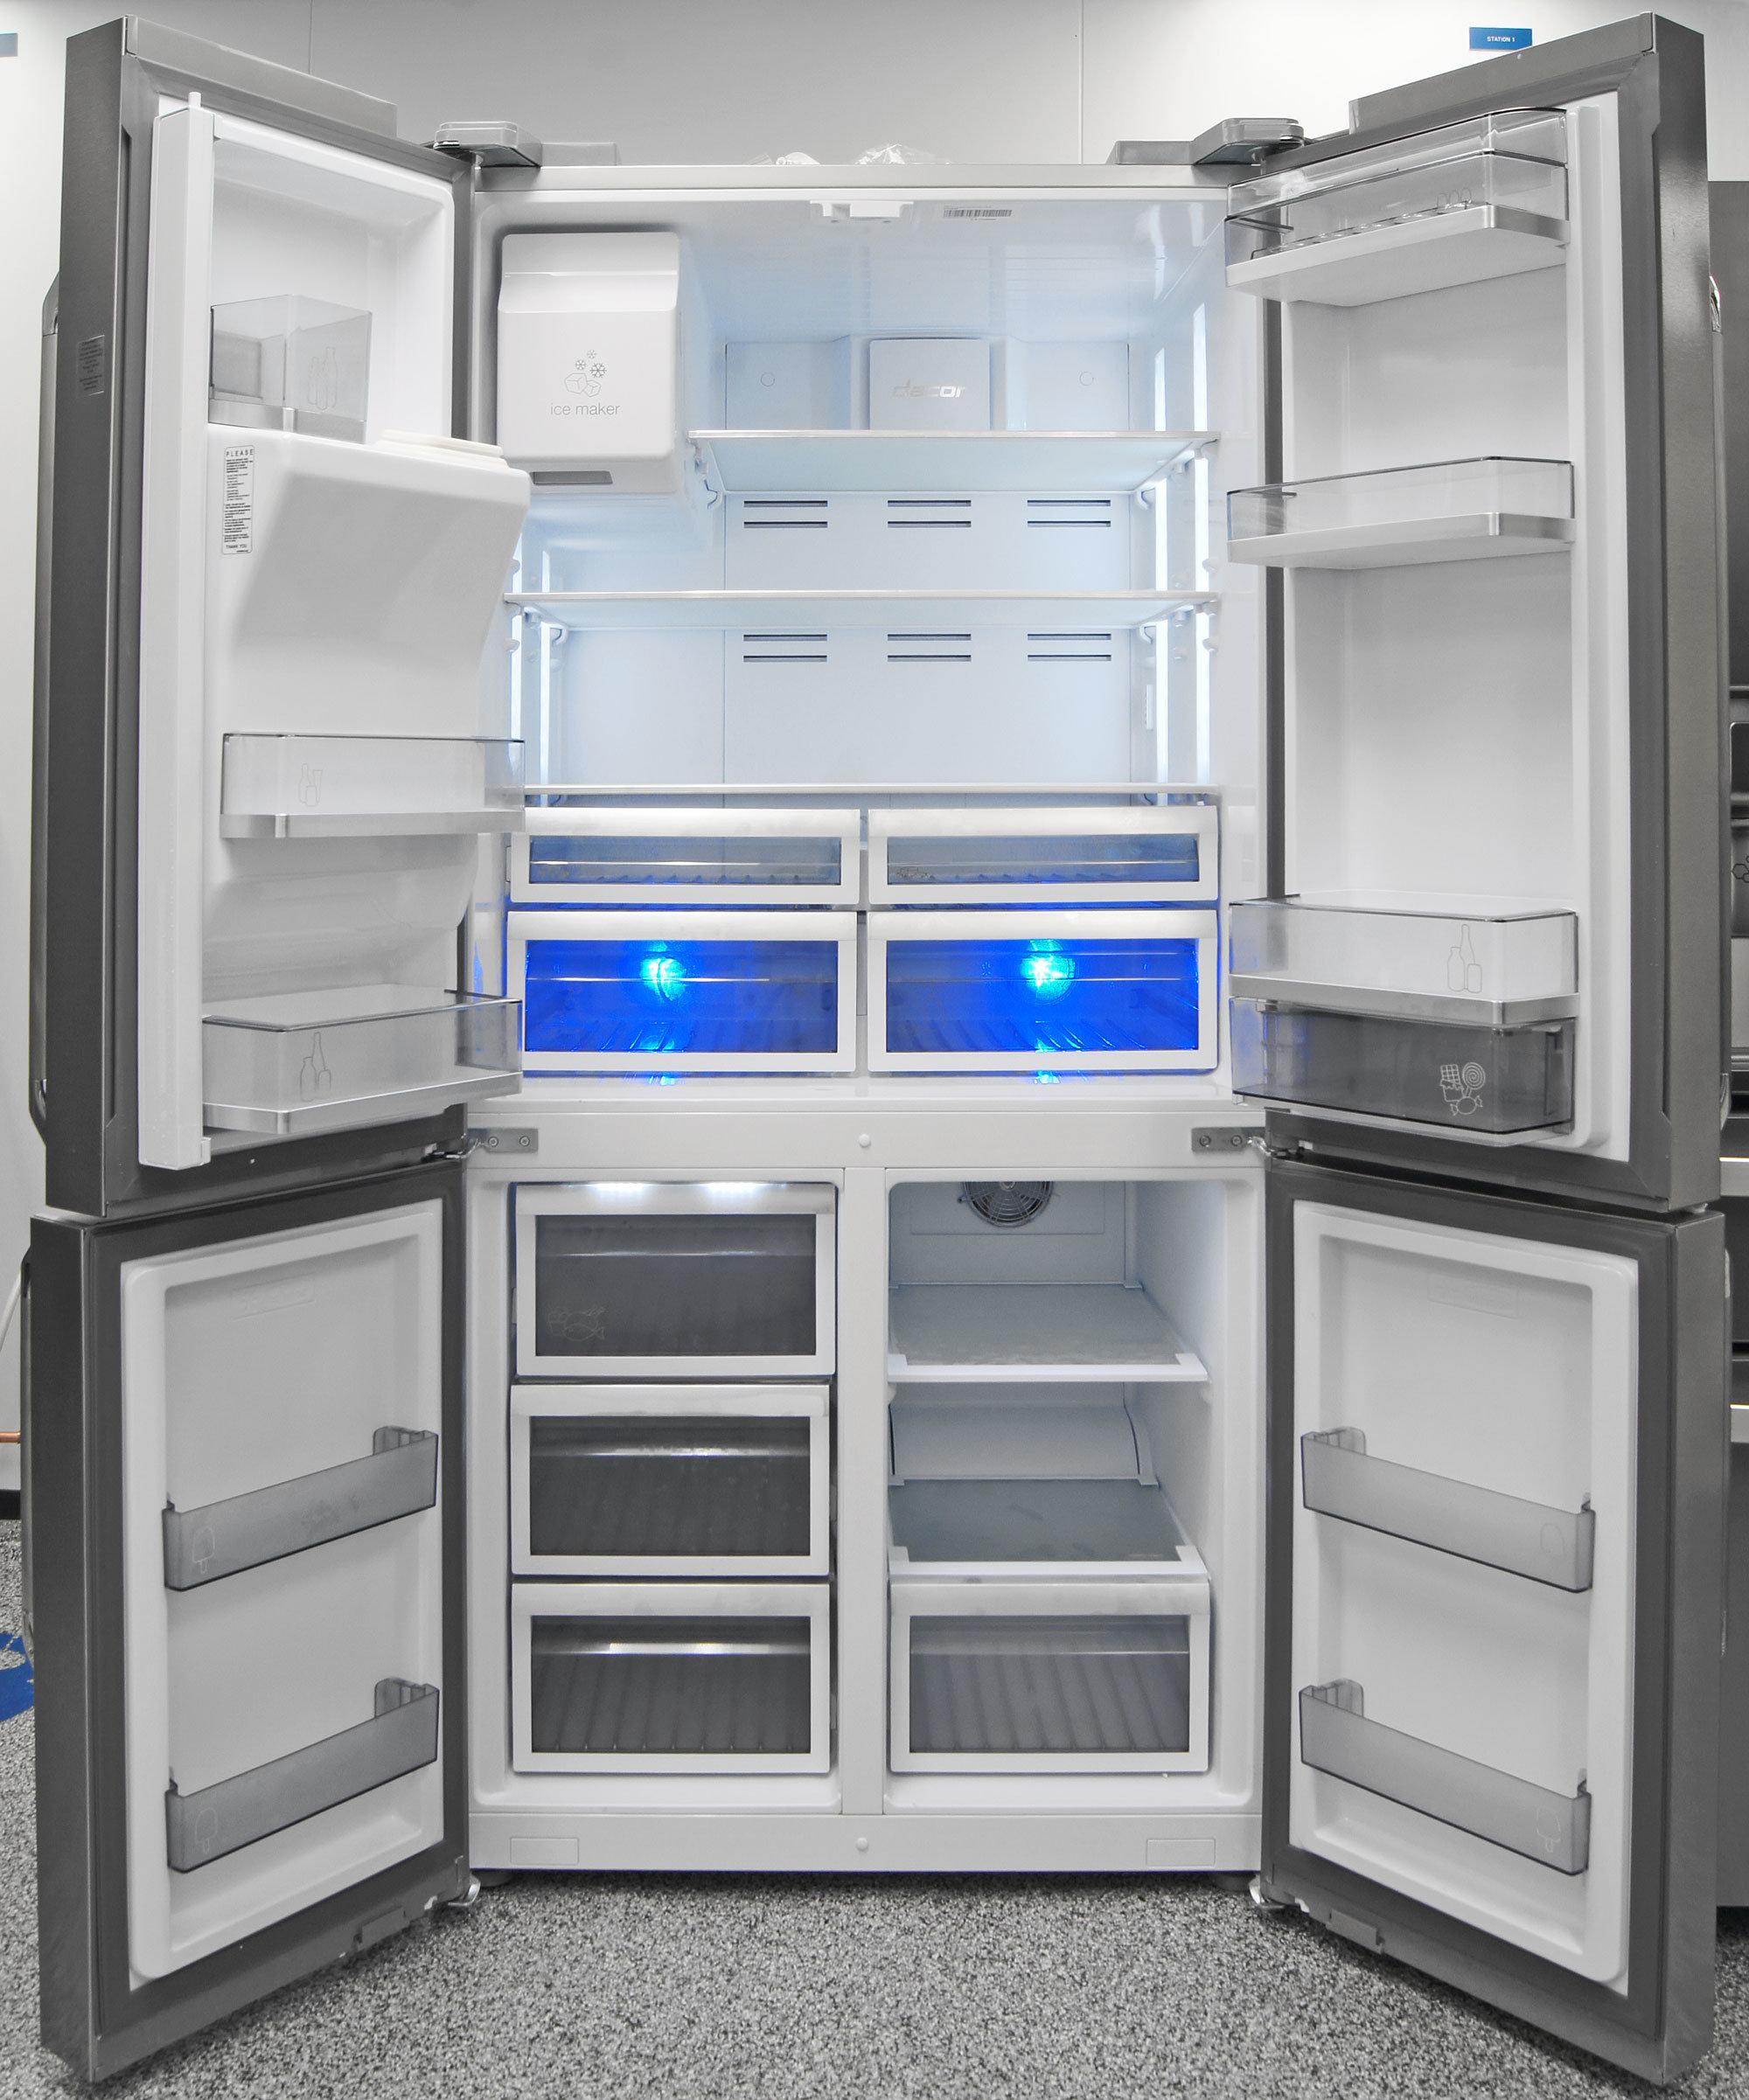 Big and stylish—that's the name of the game with the Dacor DTF364SIWS's high-end four-door refrigeration.